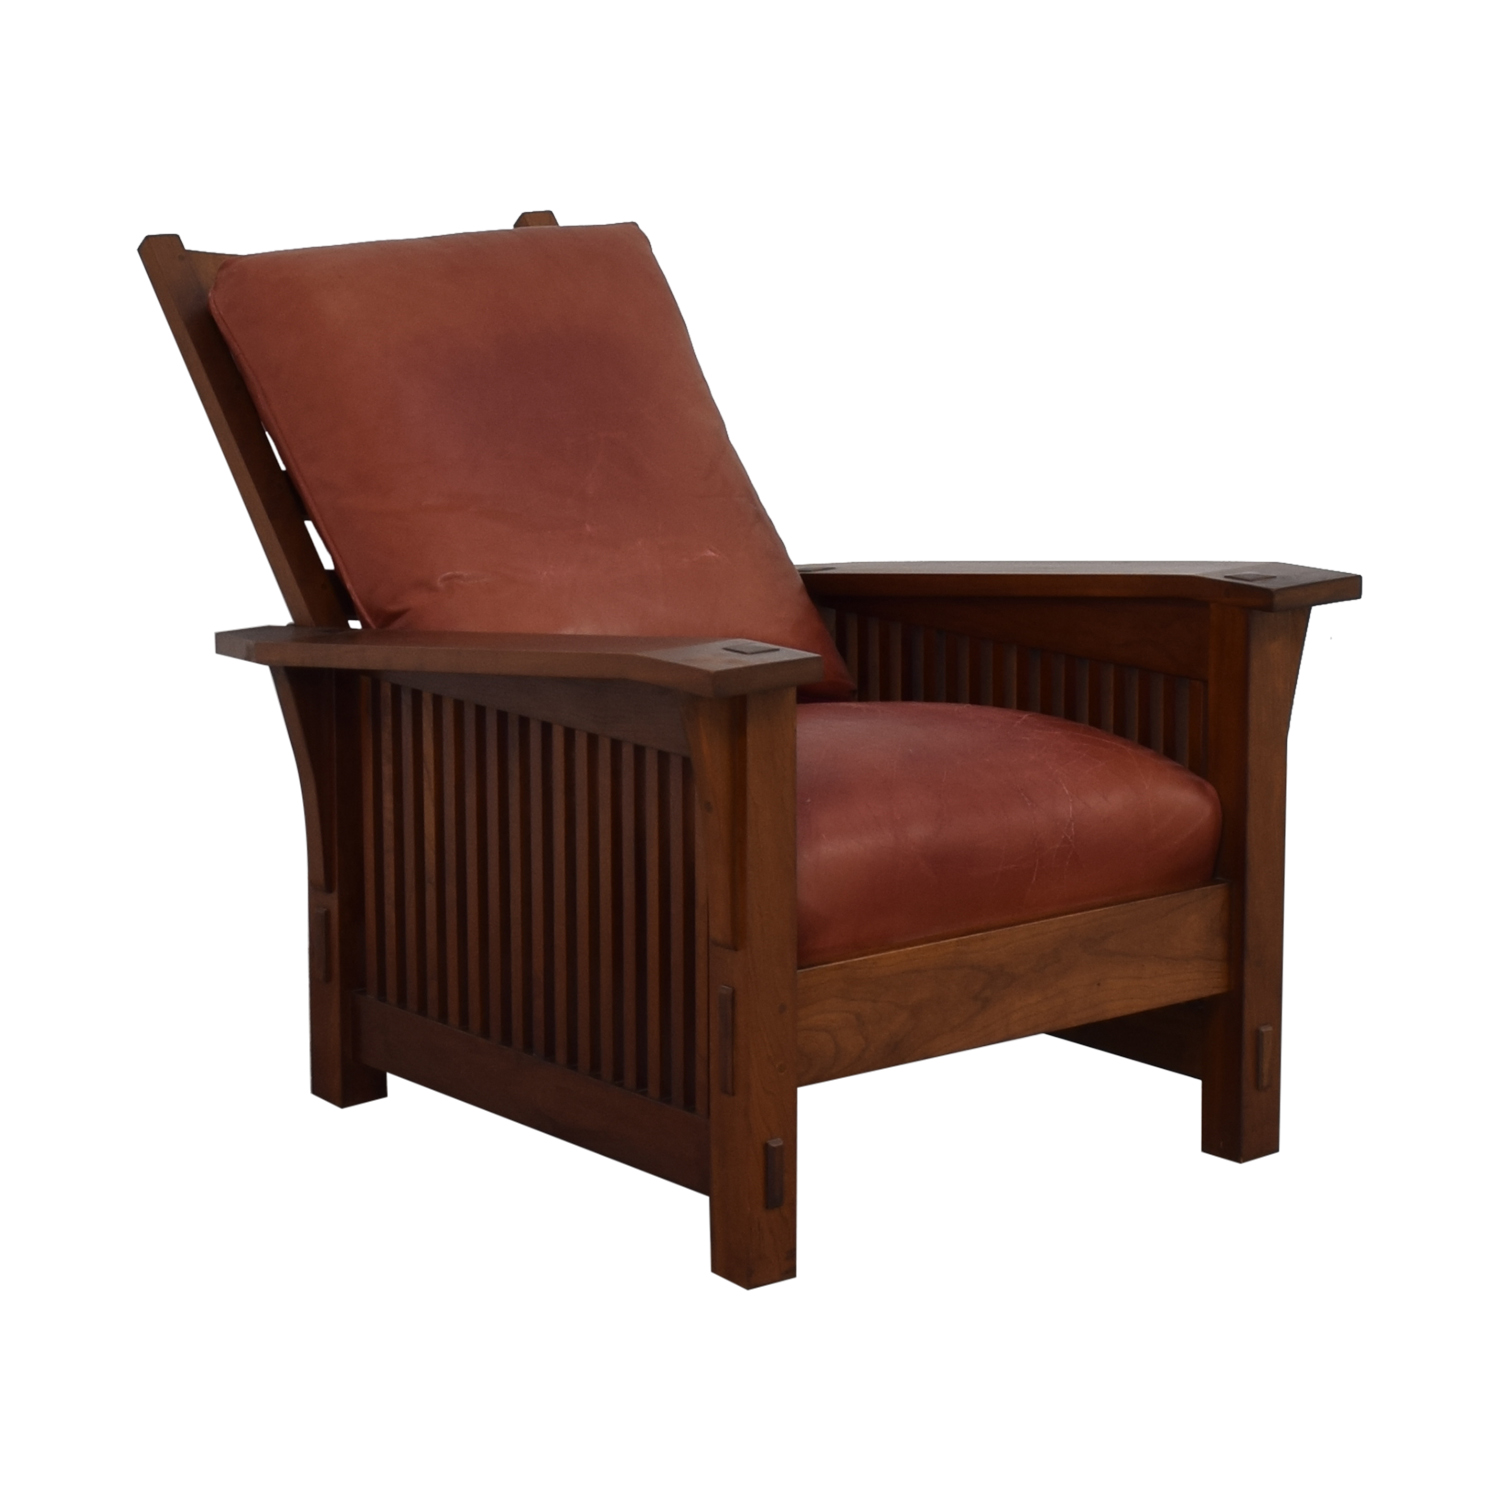 Stickley Spindle Morris Chair / Accent Chairs